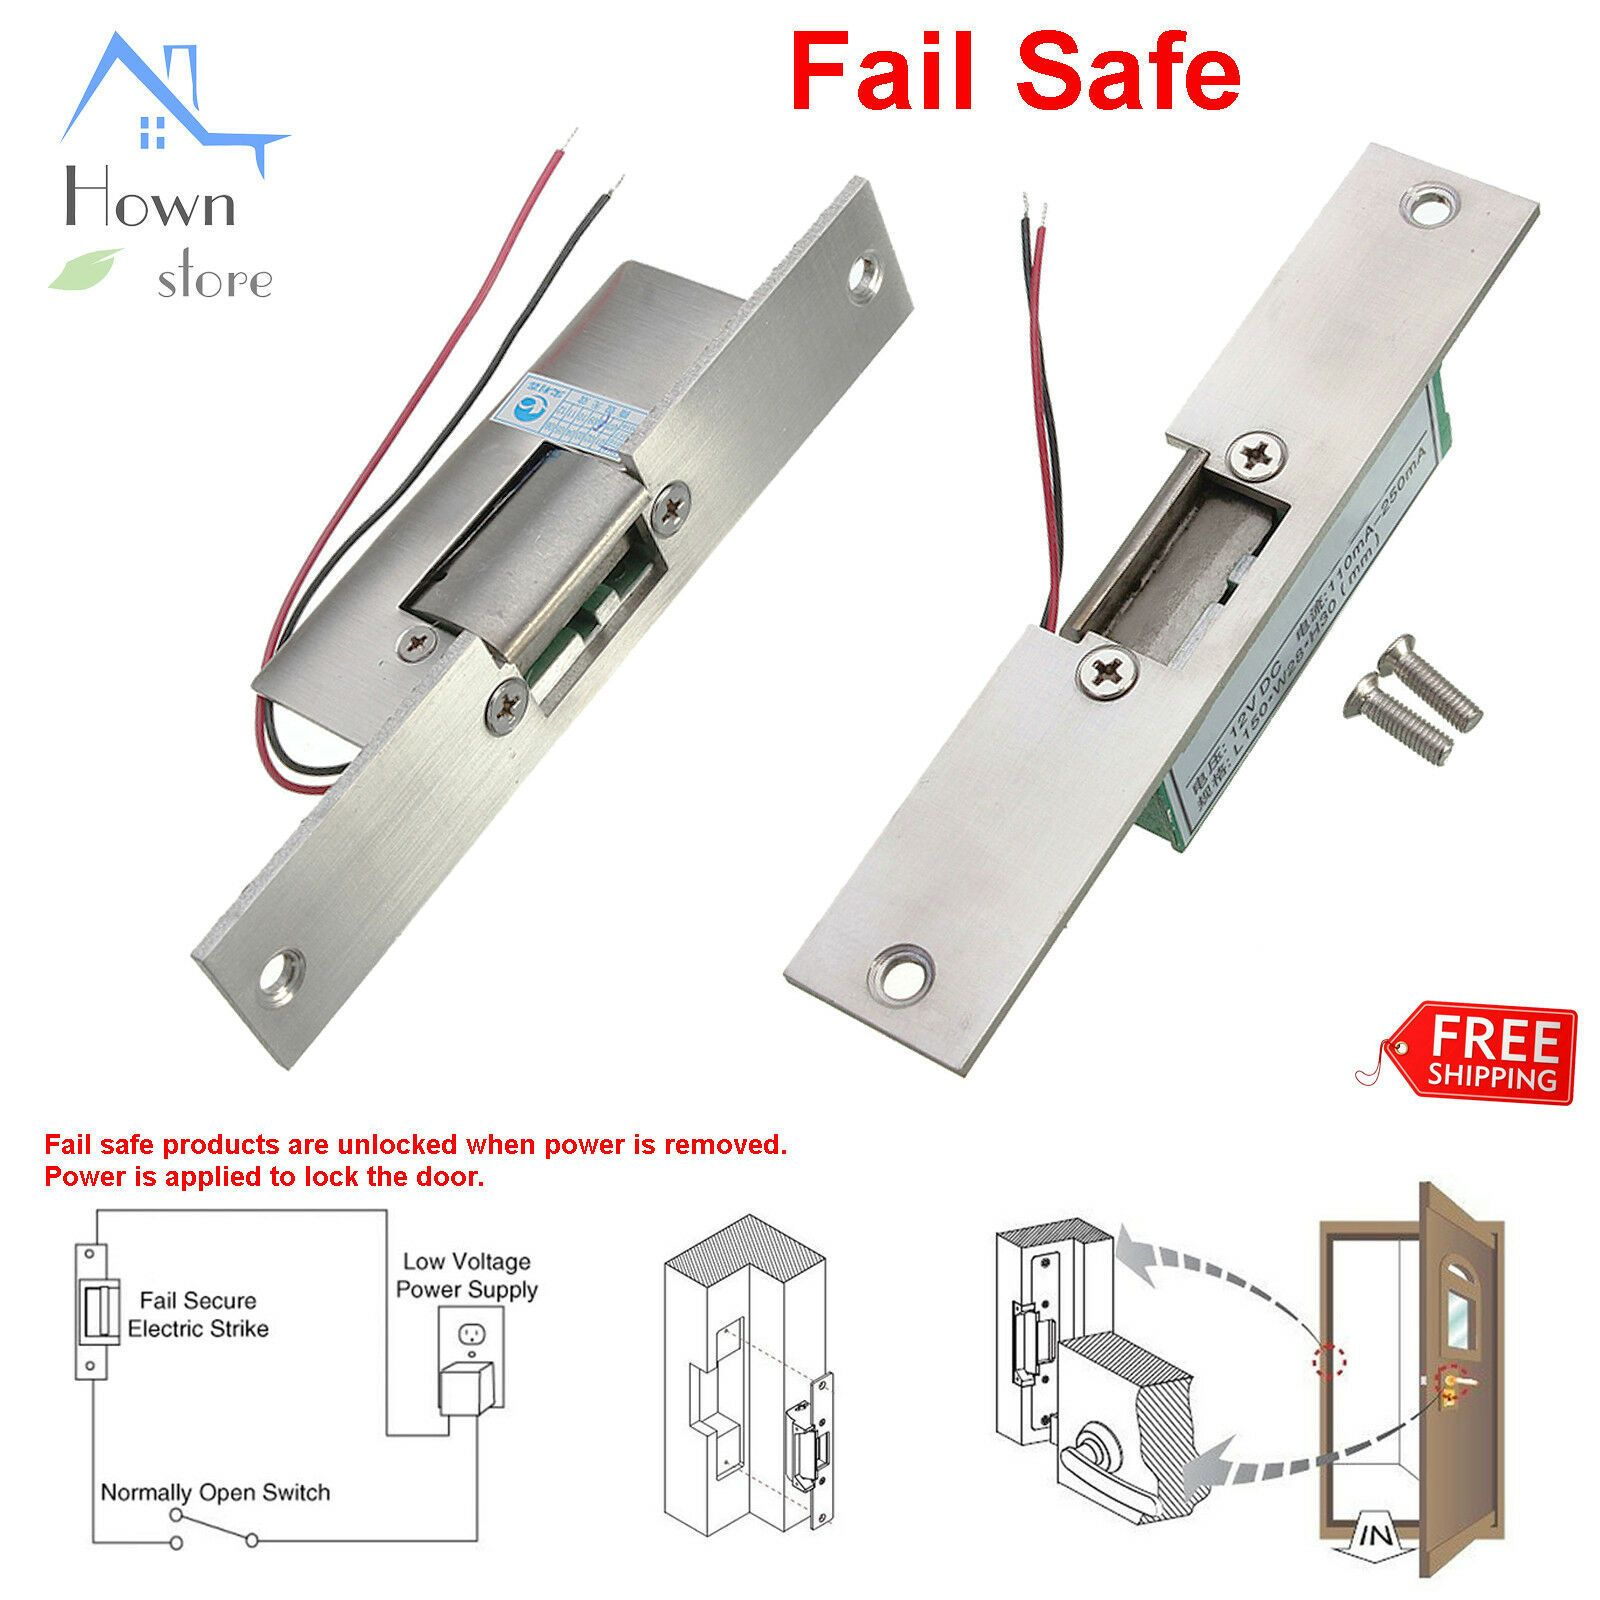 electric strike lock wiring diagram free picture door access control electric strike lock narrow fail safe frame  electric strike lock narrow fail safe